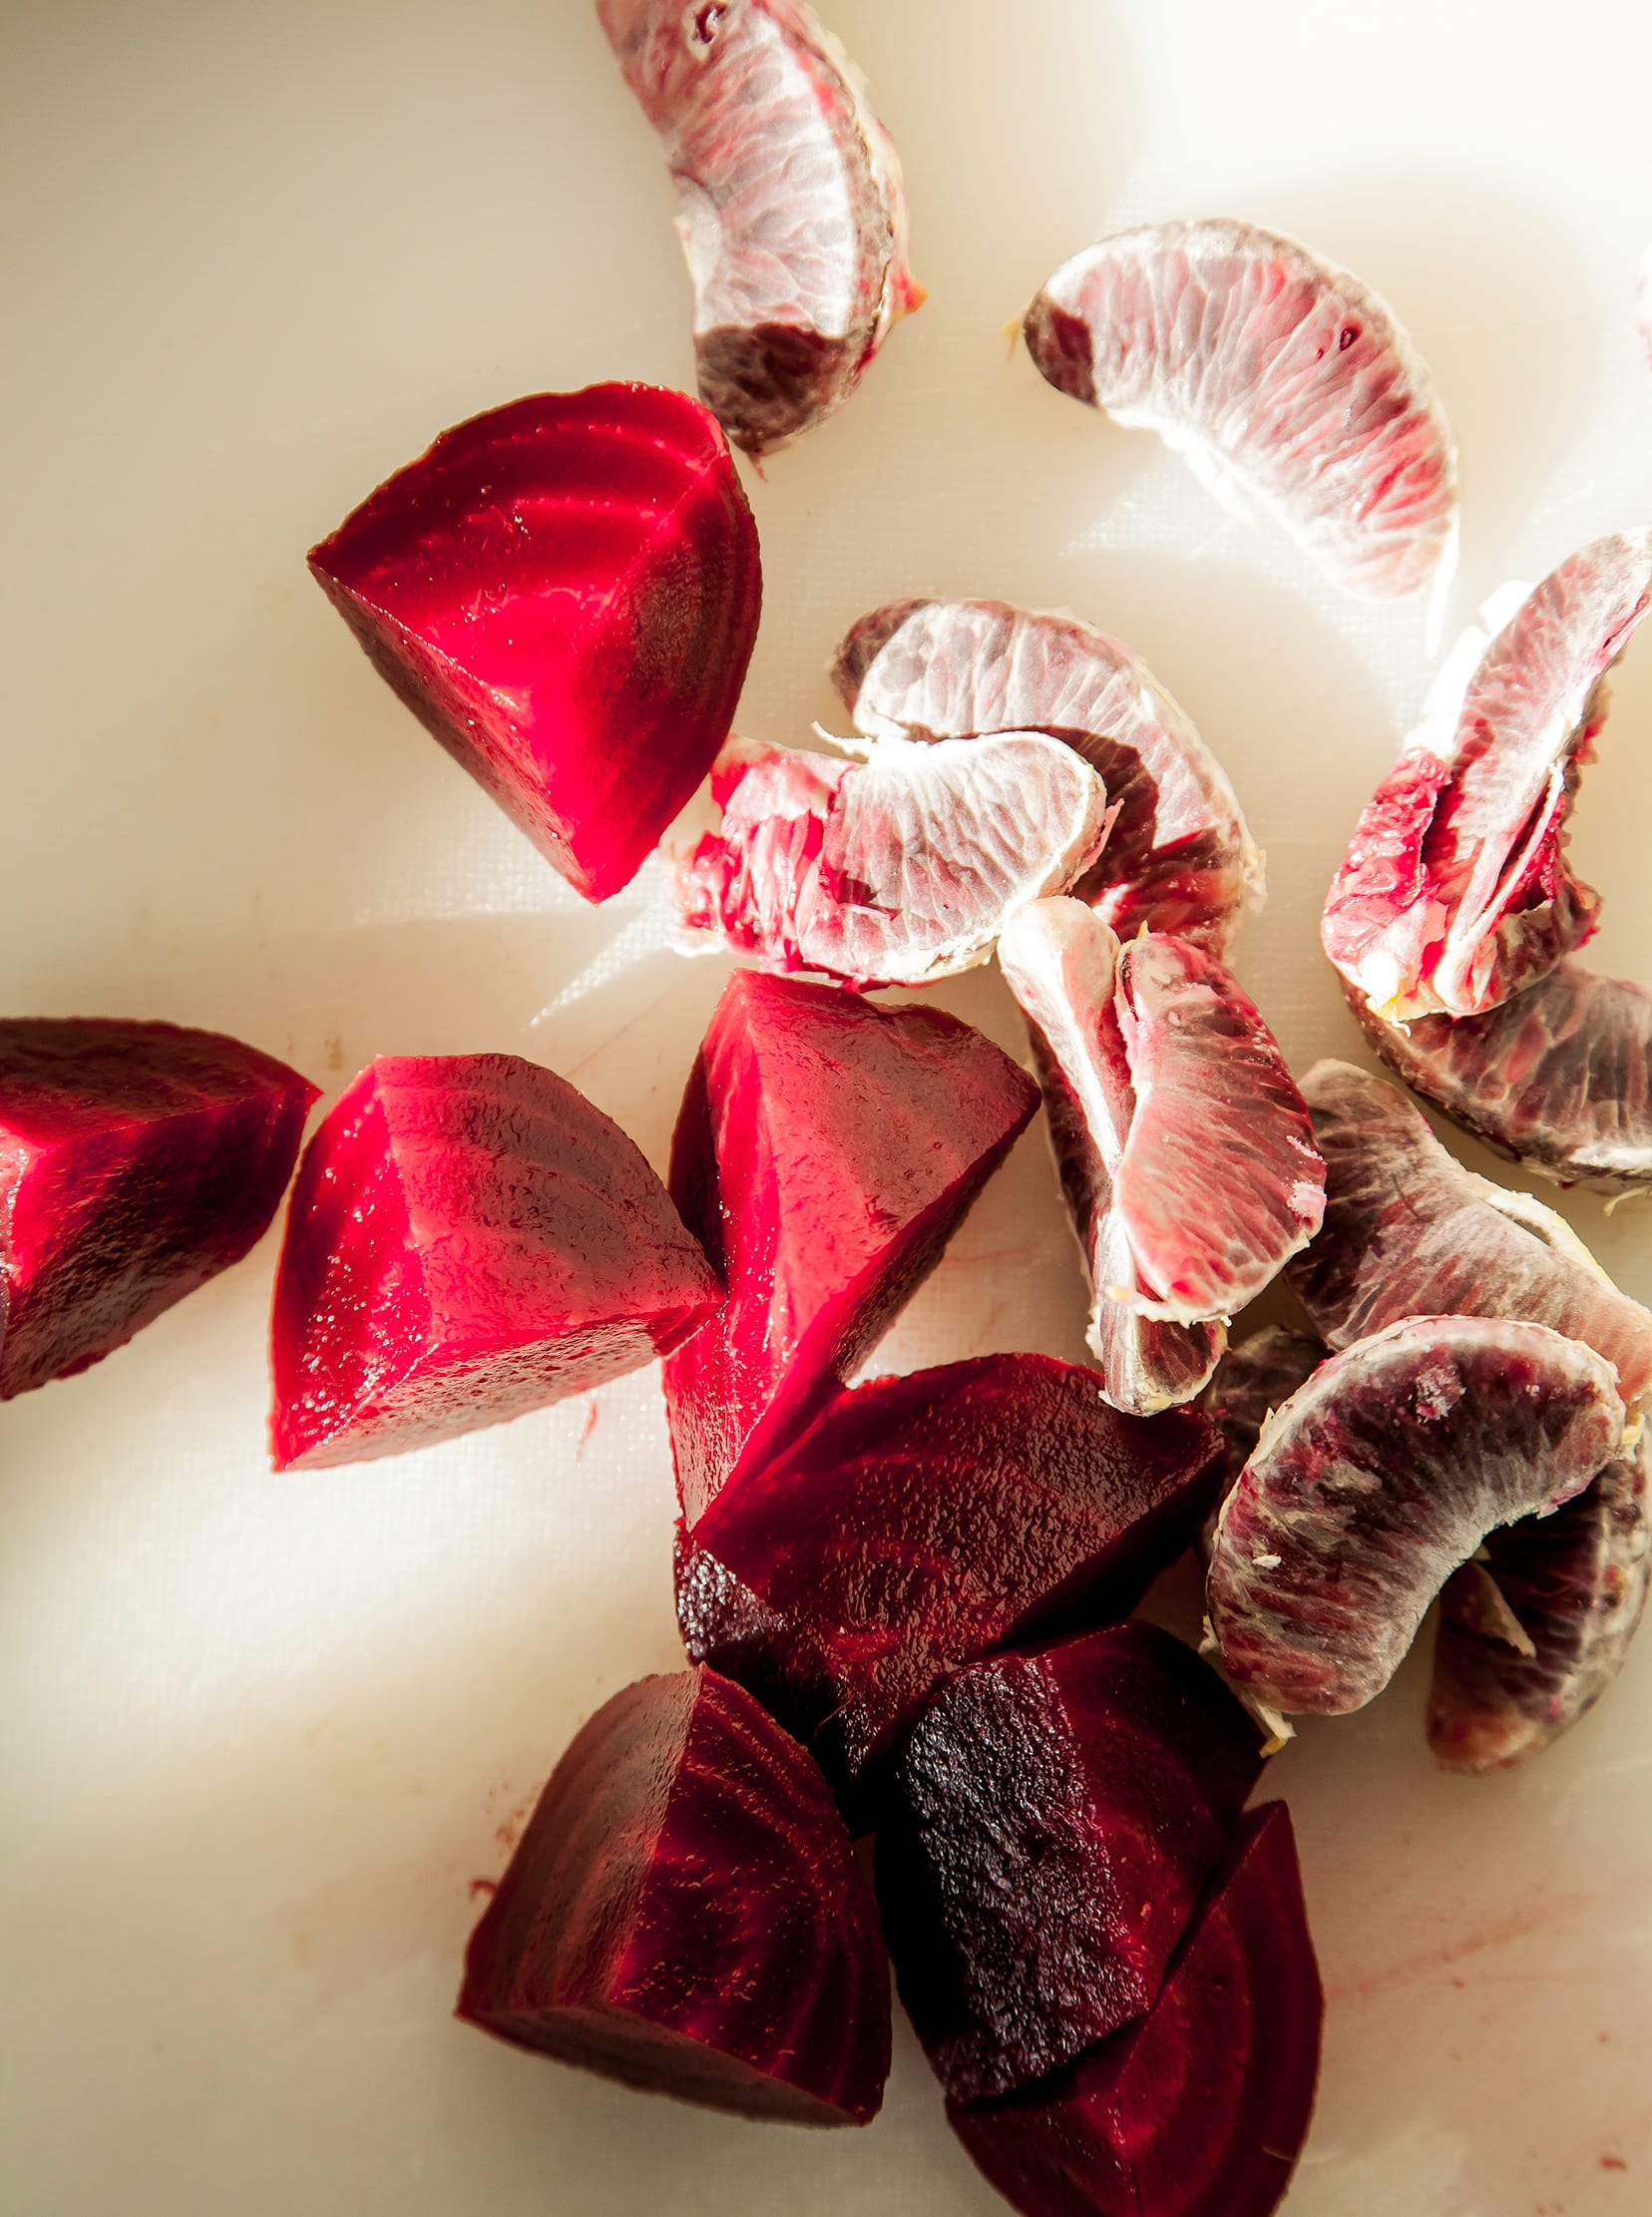 Overhead, up-close shot of a segmented blood orange and diced beet in harsh sunlight on a white background.